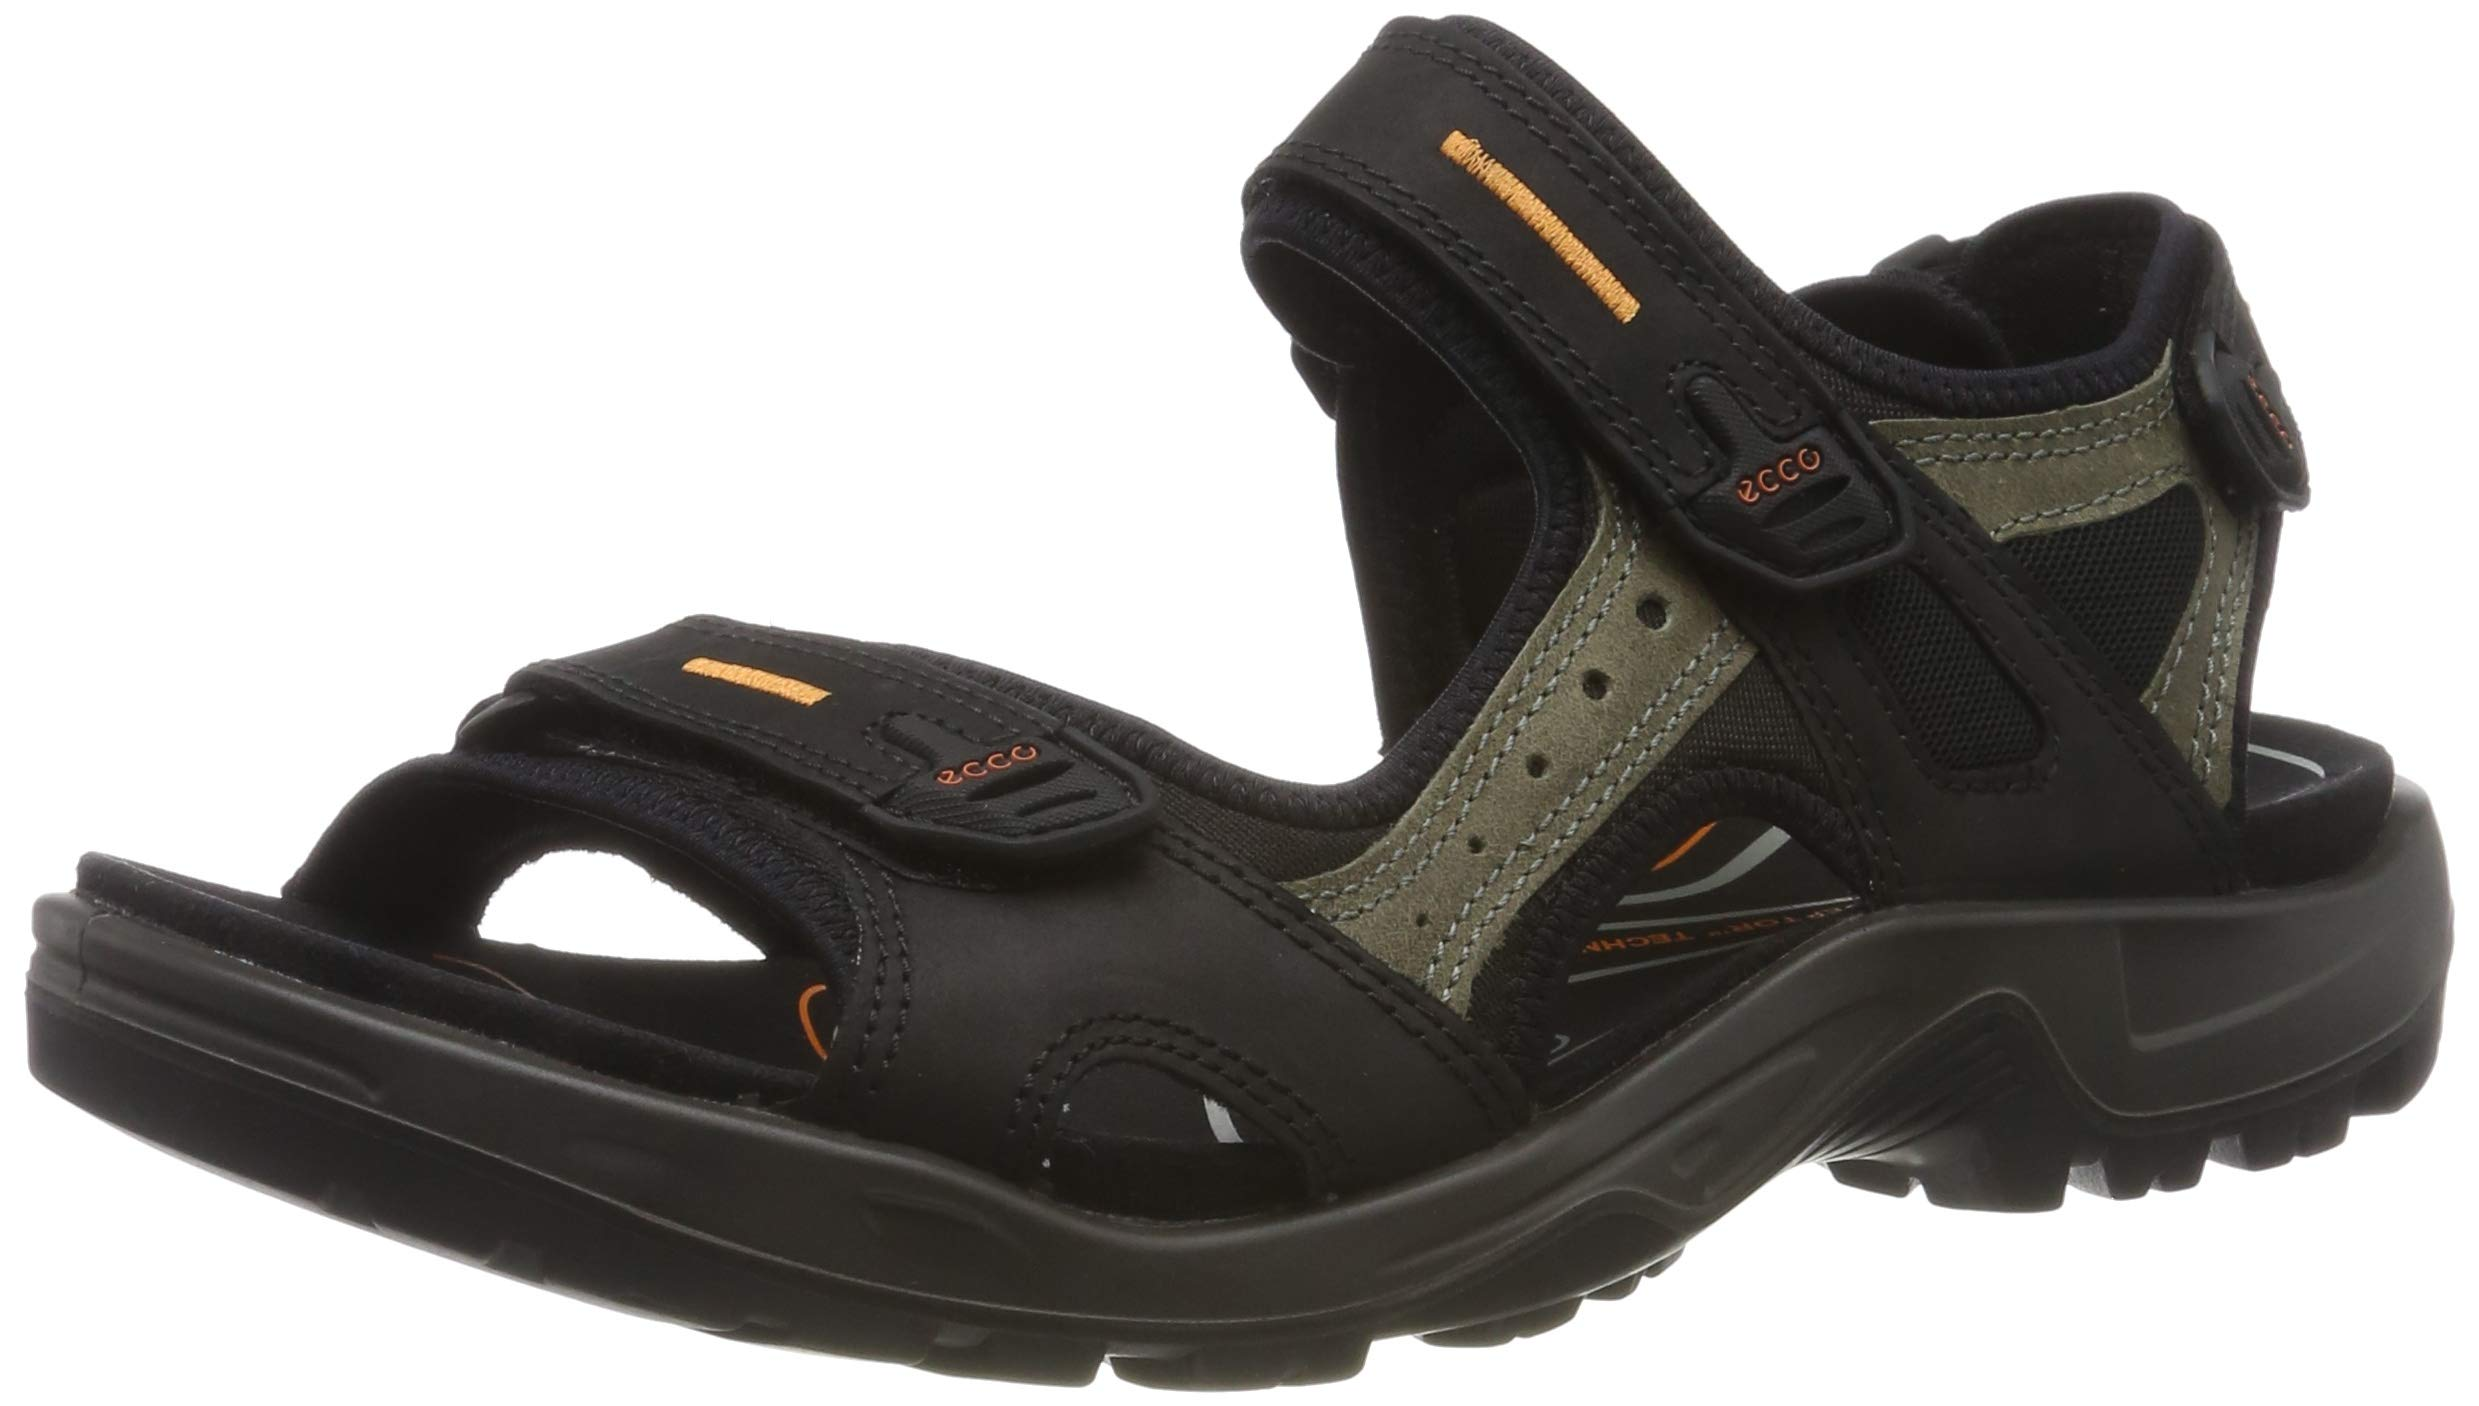 861eeb19562b25 ECCO Offroad, Chaussures Multisport Outdoor Homme product image